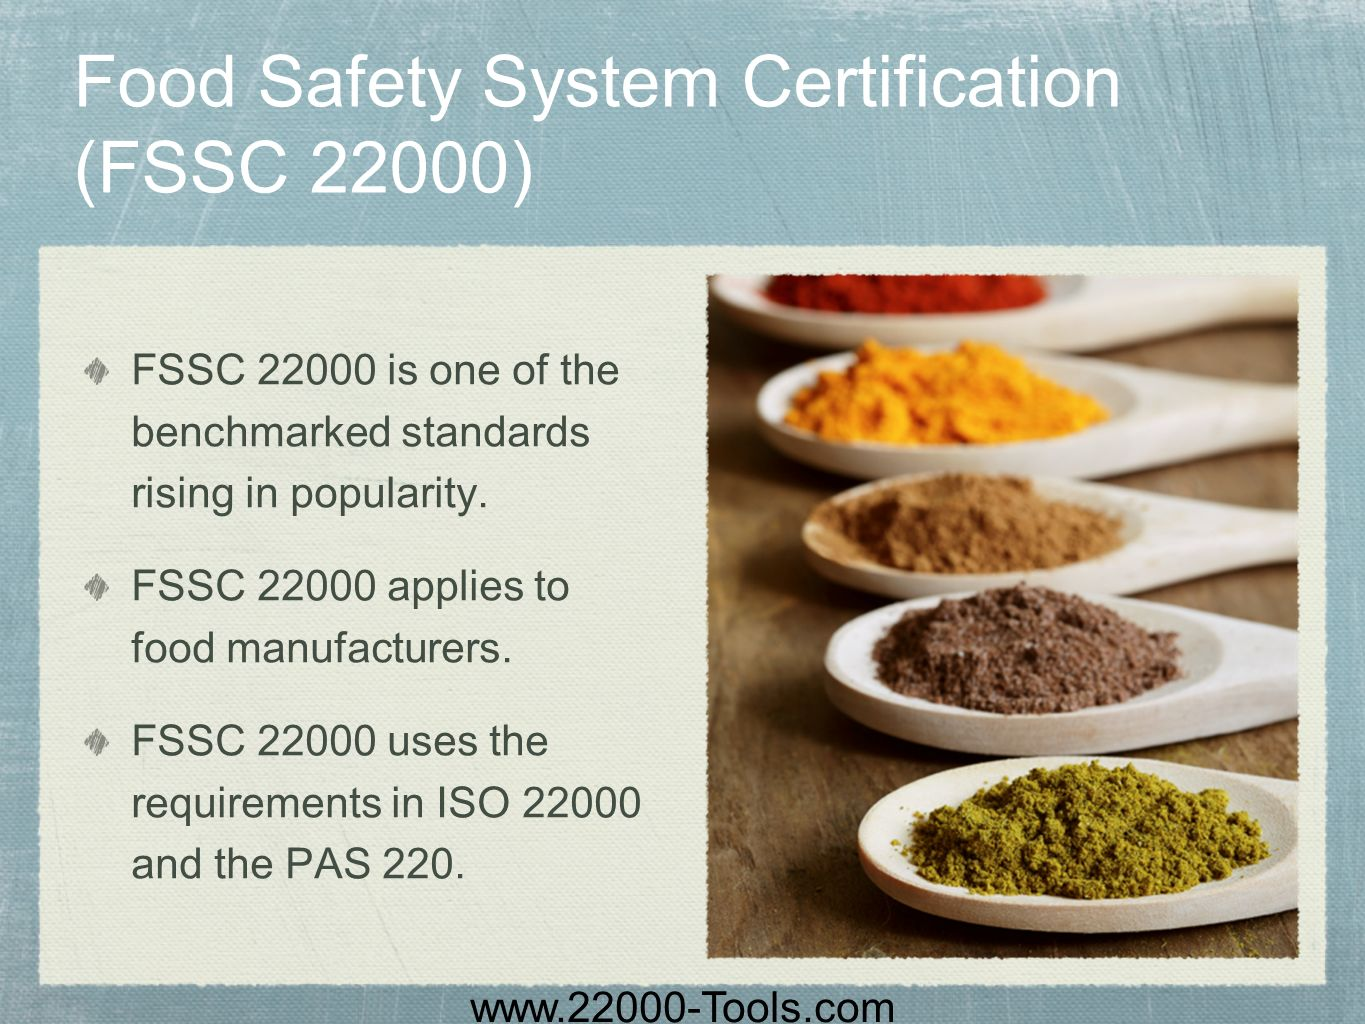 Food Safety System Certification (FSSC 22000)